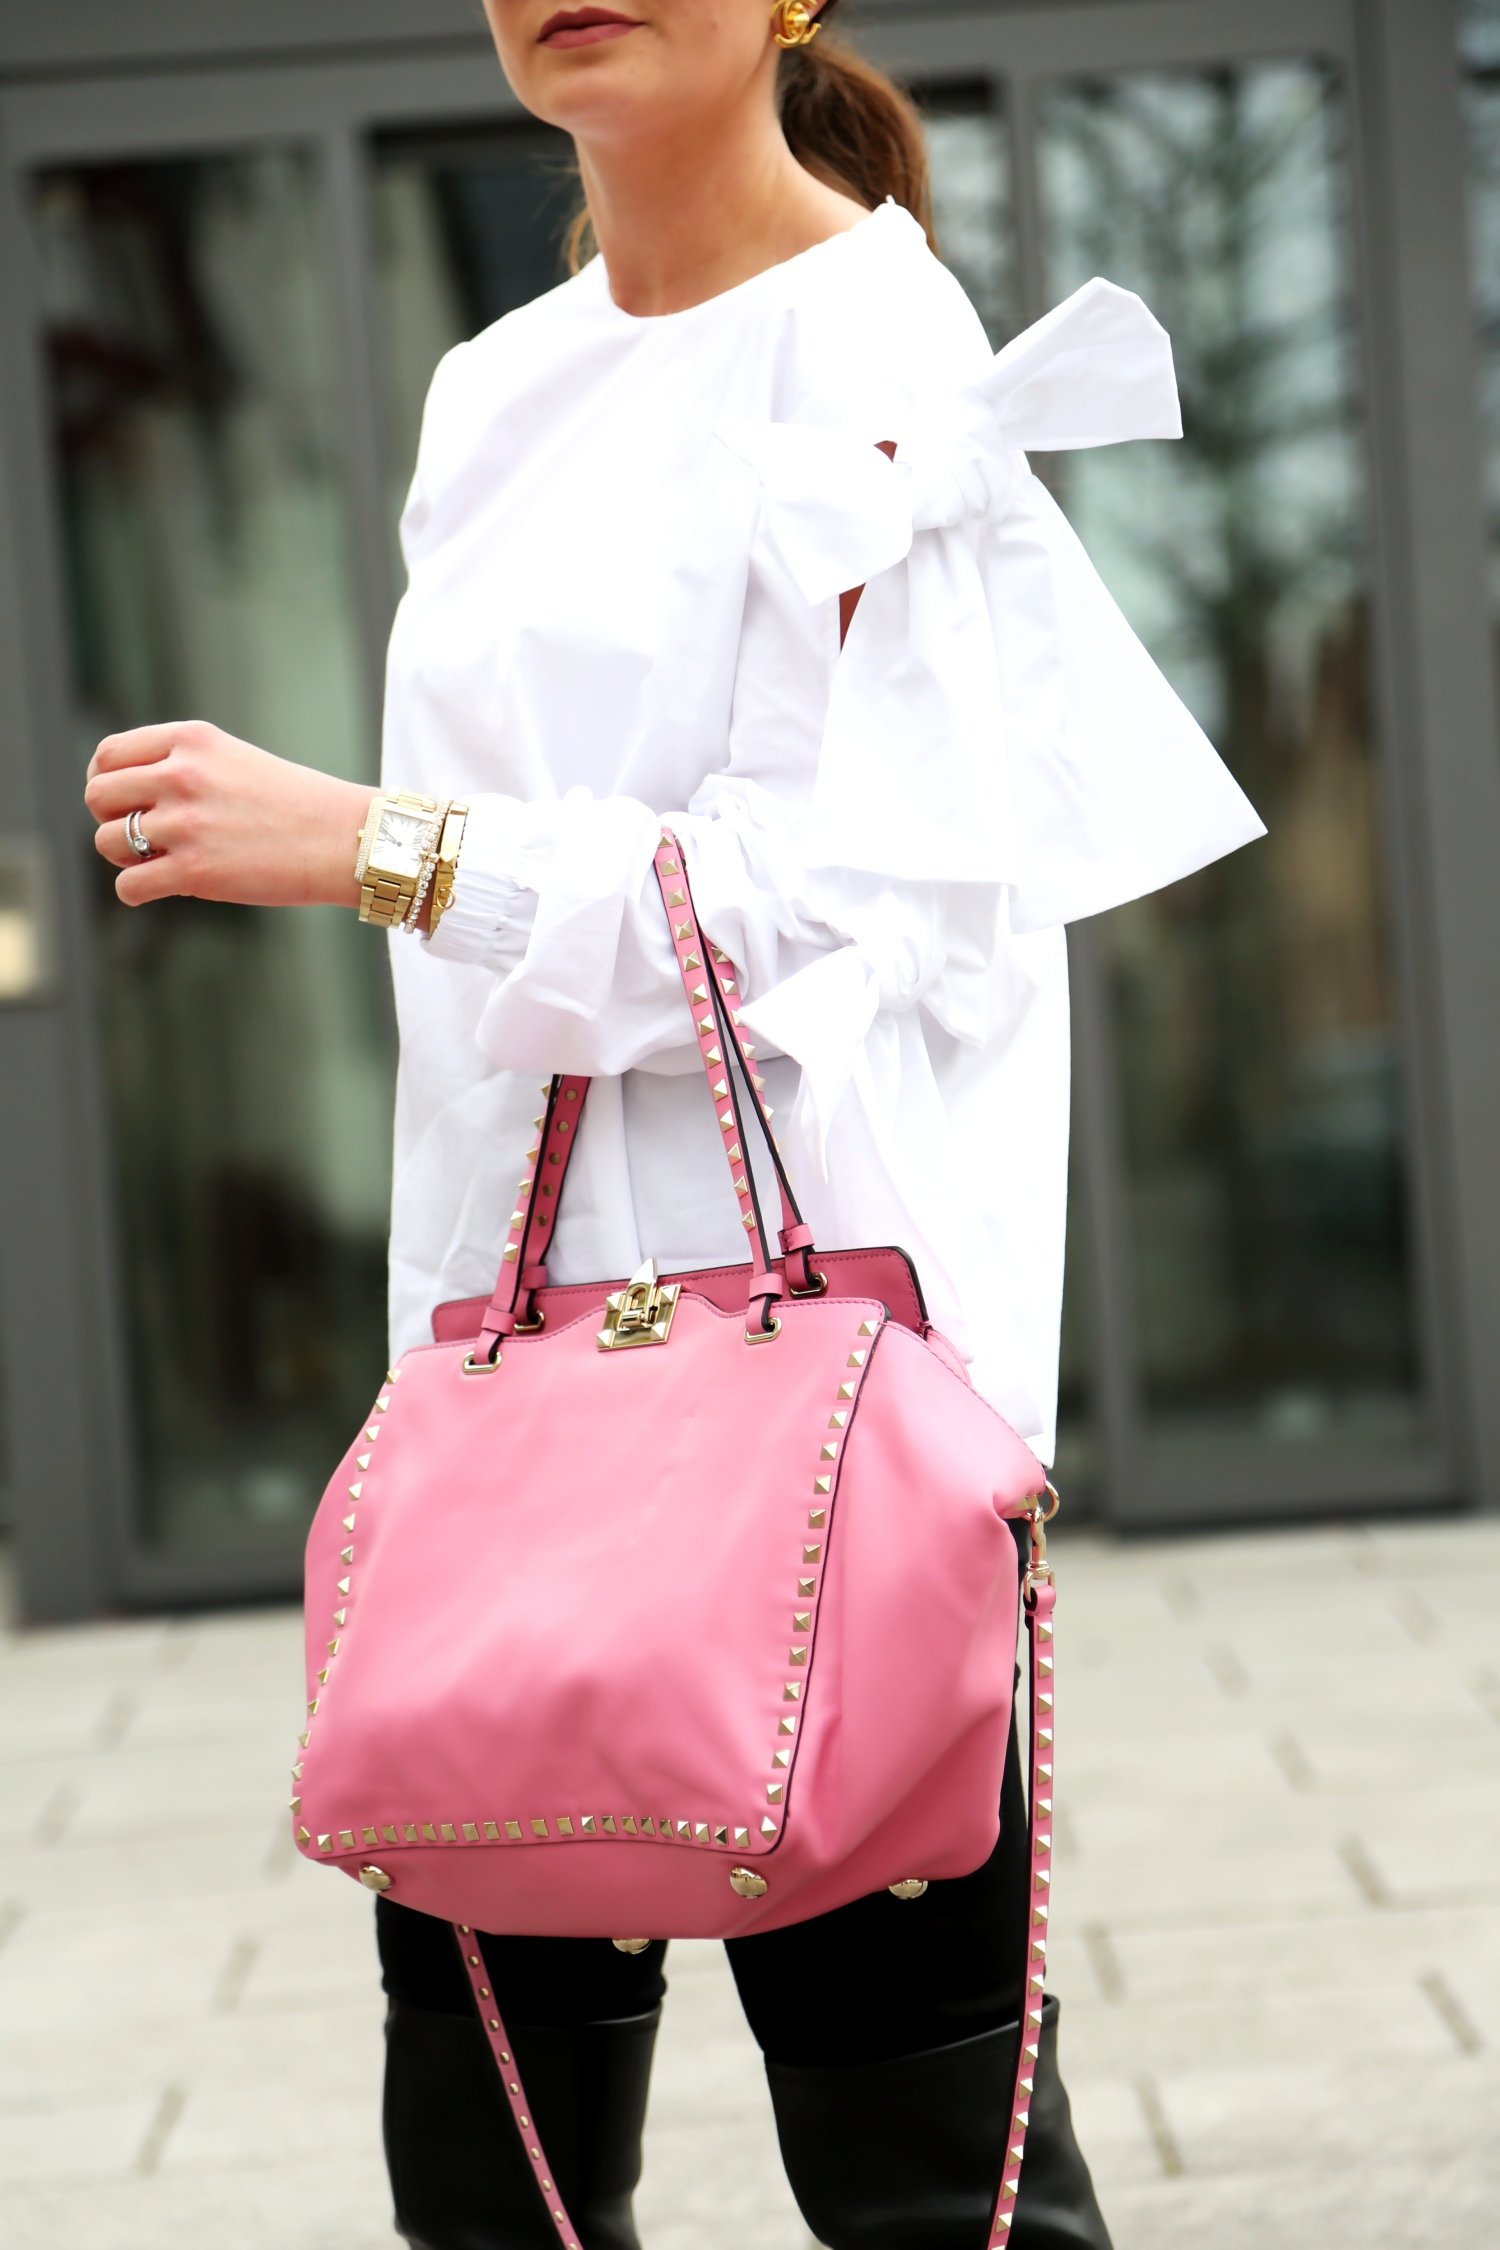 outfit-details-bow-blouse-valentino-bag-pink